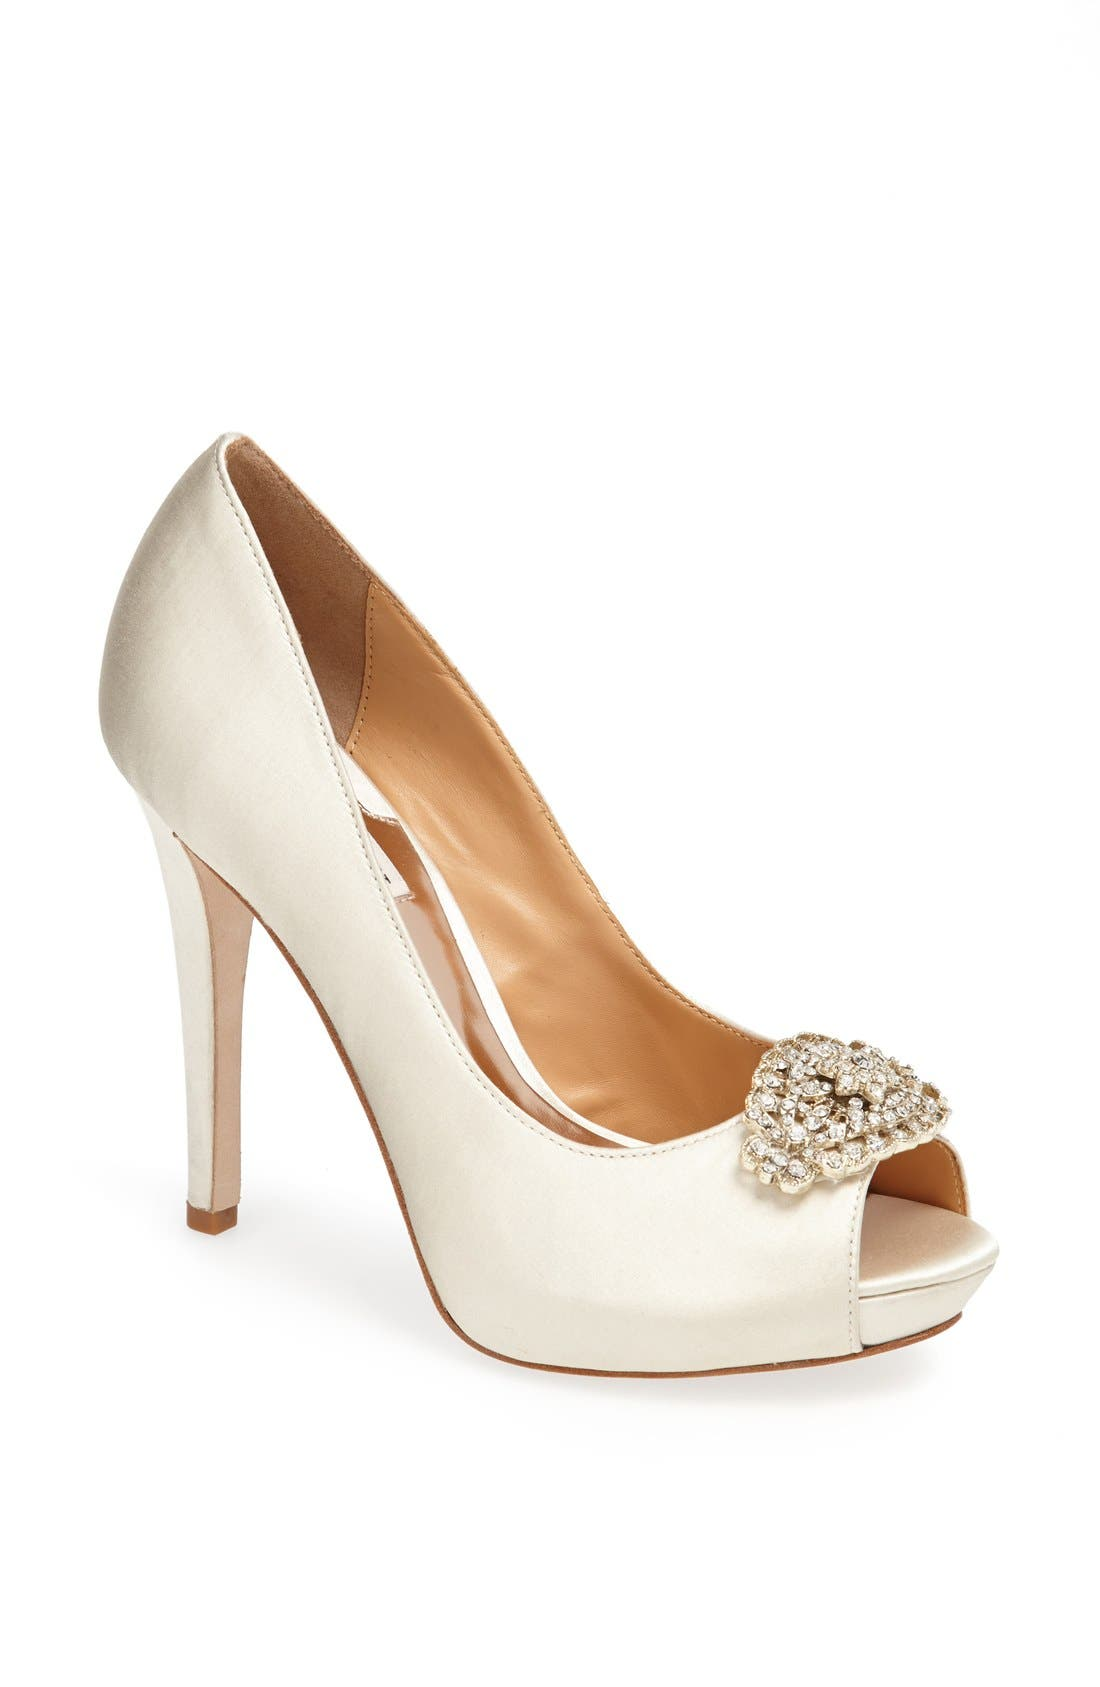 Main Image - Badgley Mischka 'Goodie' Pump